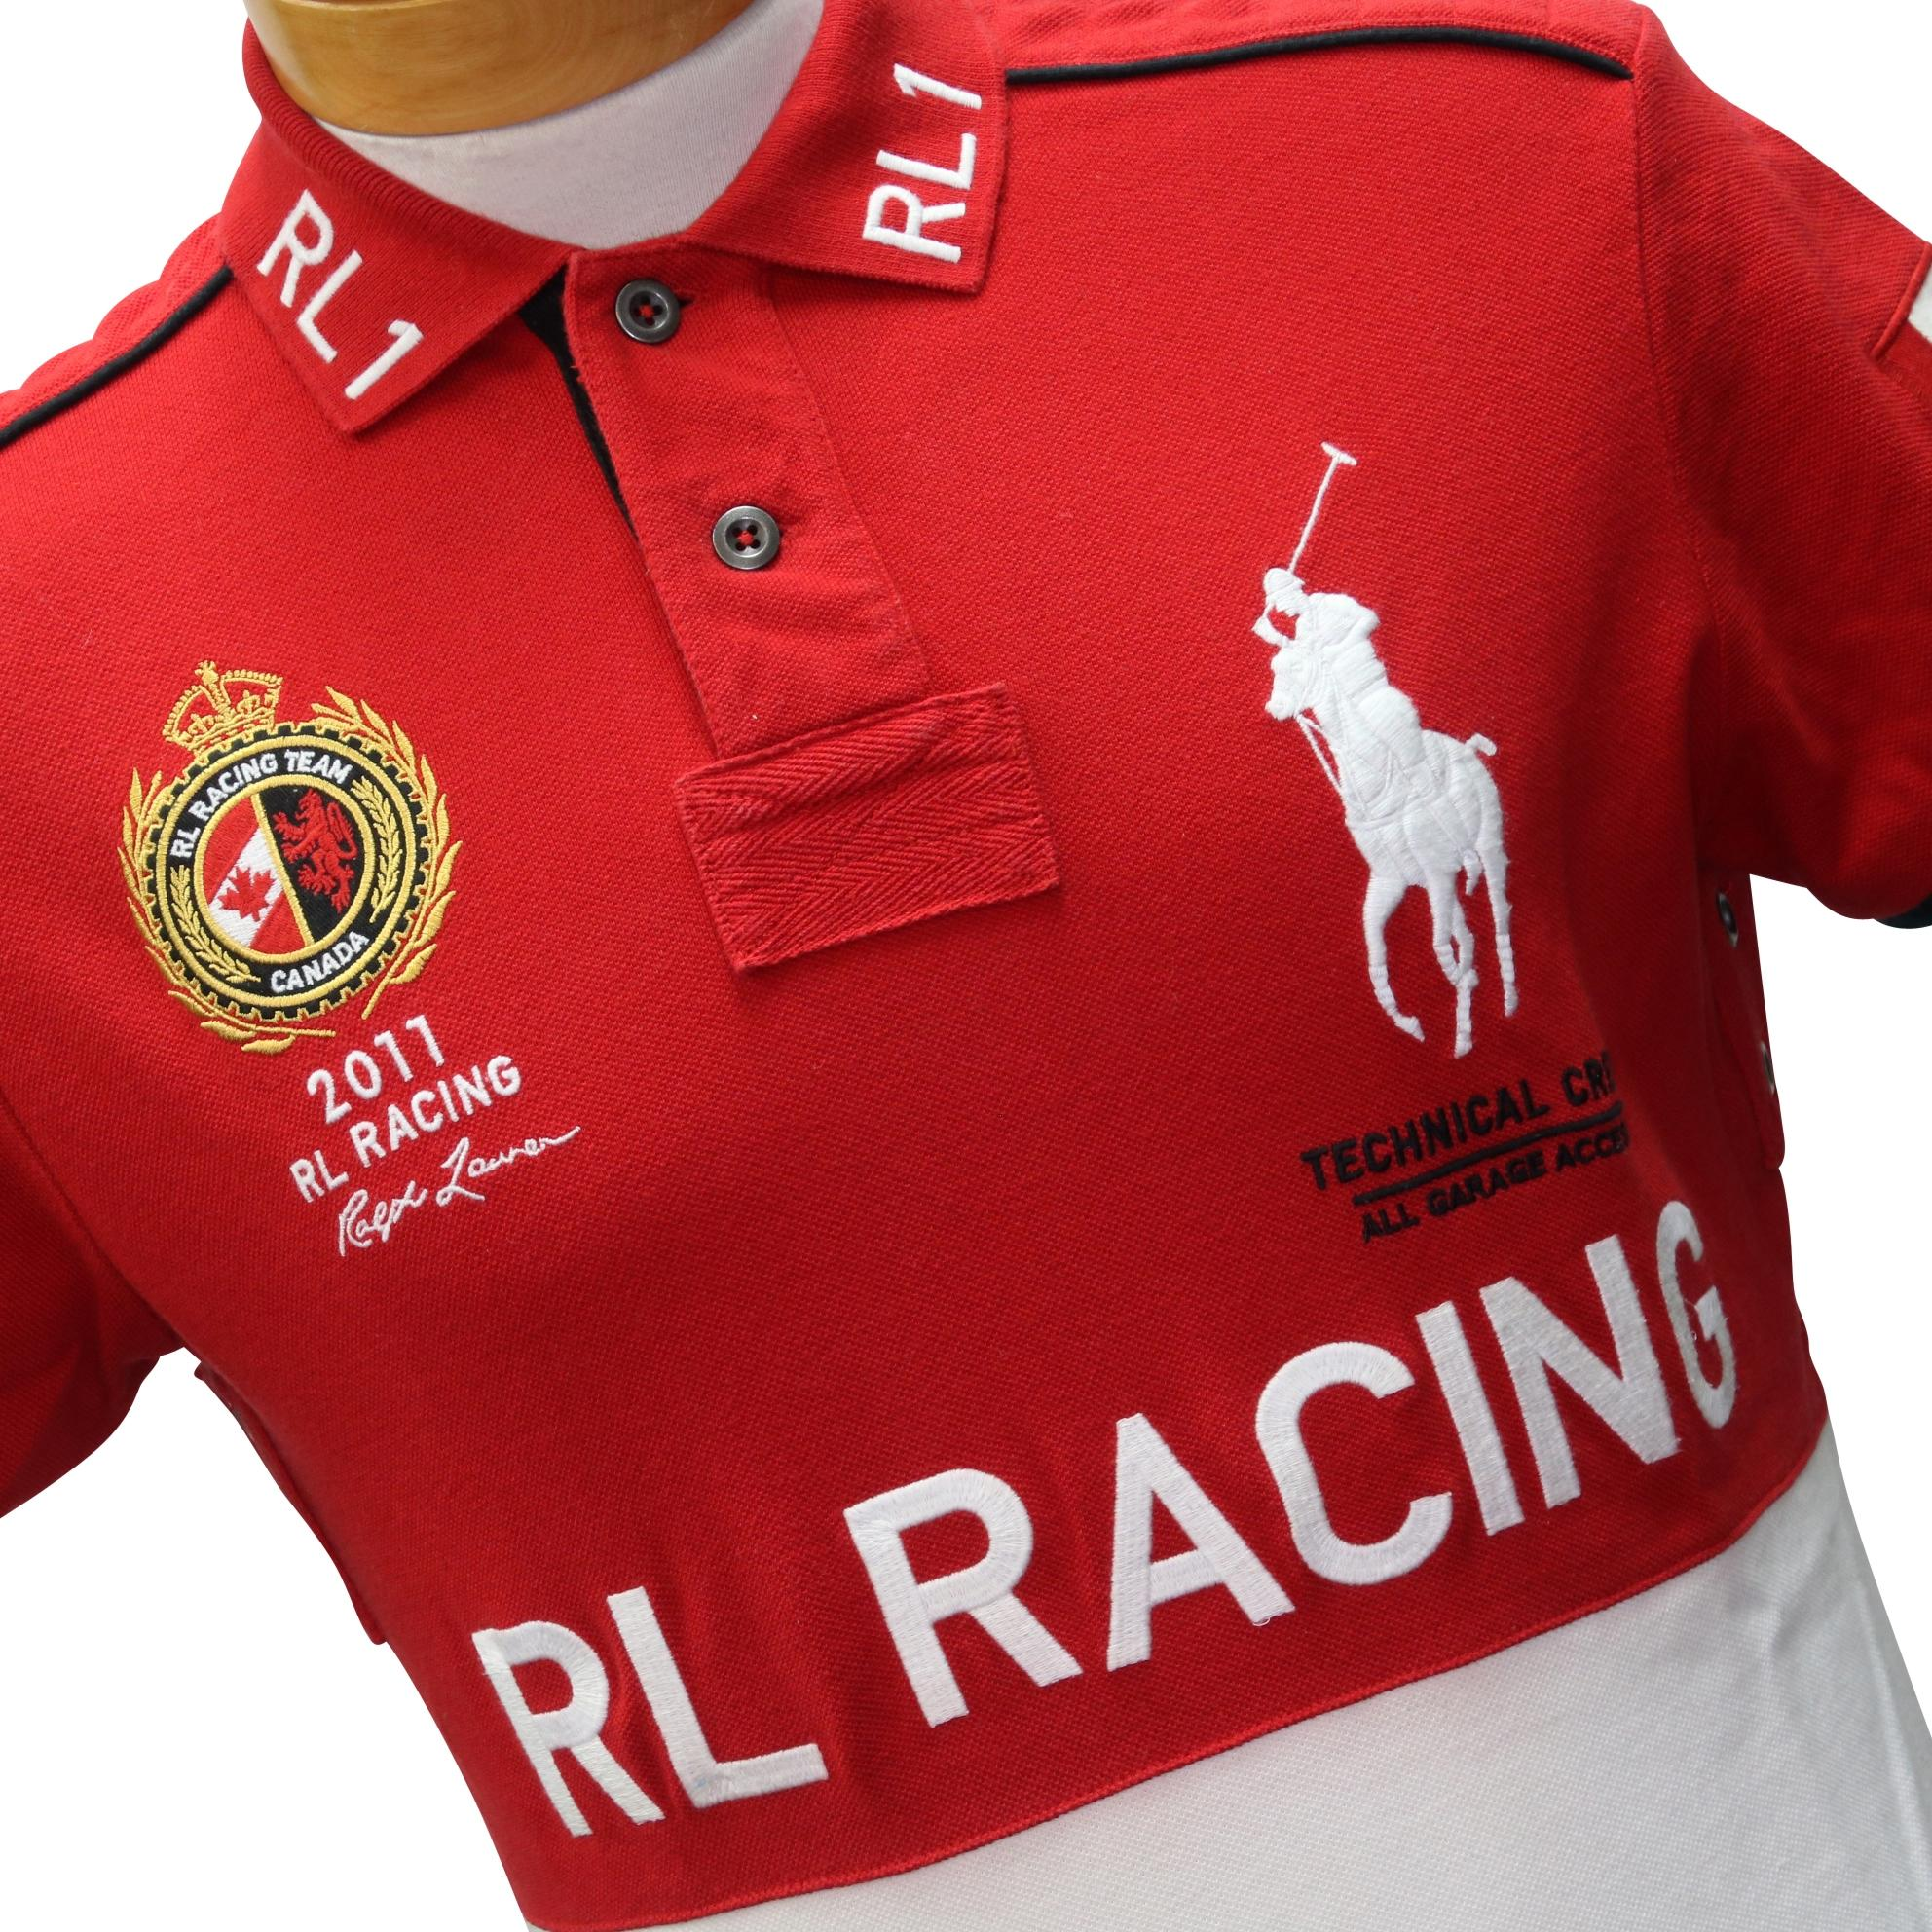 0d072077e Polo Ralph Lauren Big Pony Country Shirt – EDGE Engineering and ...